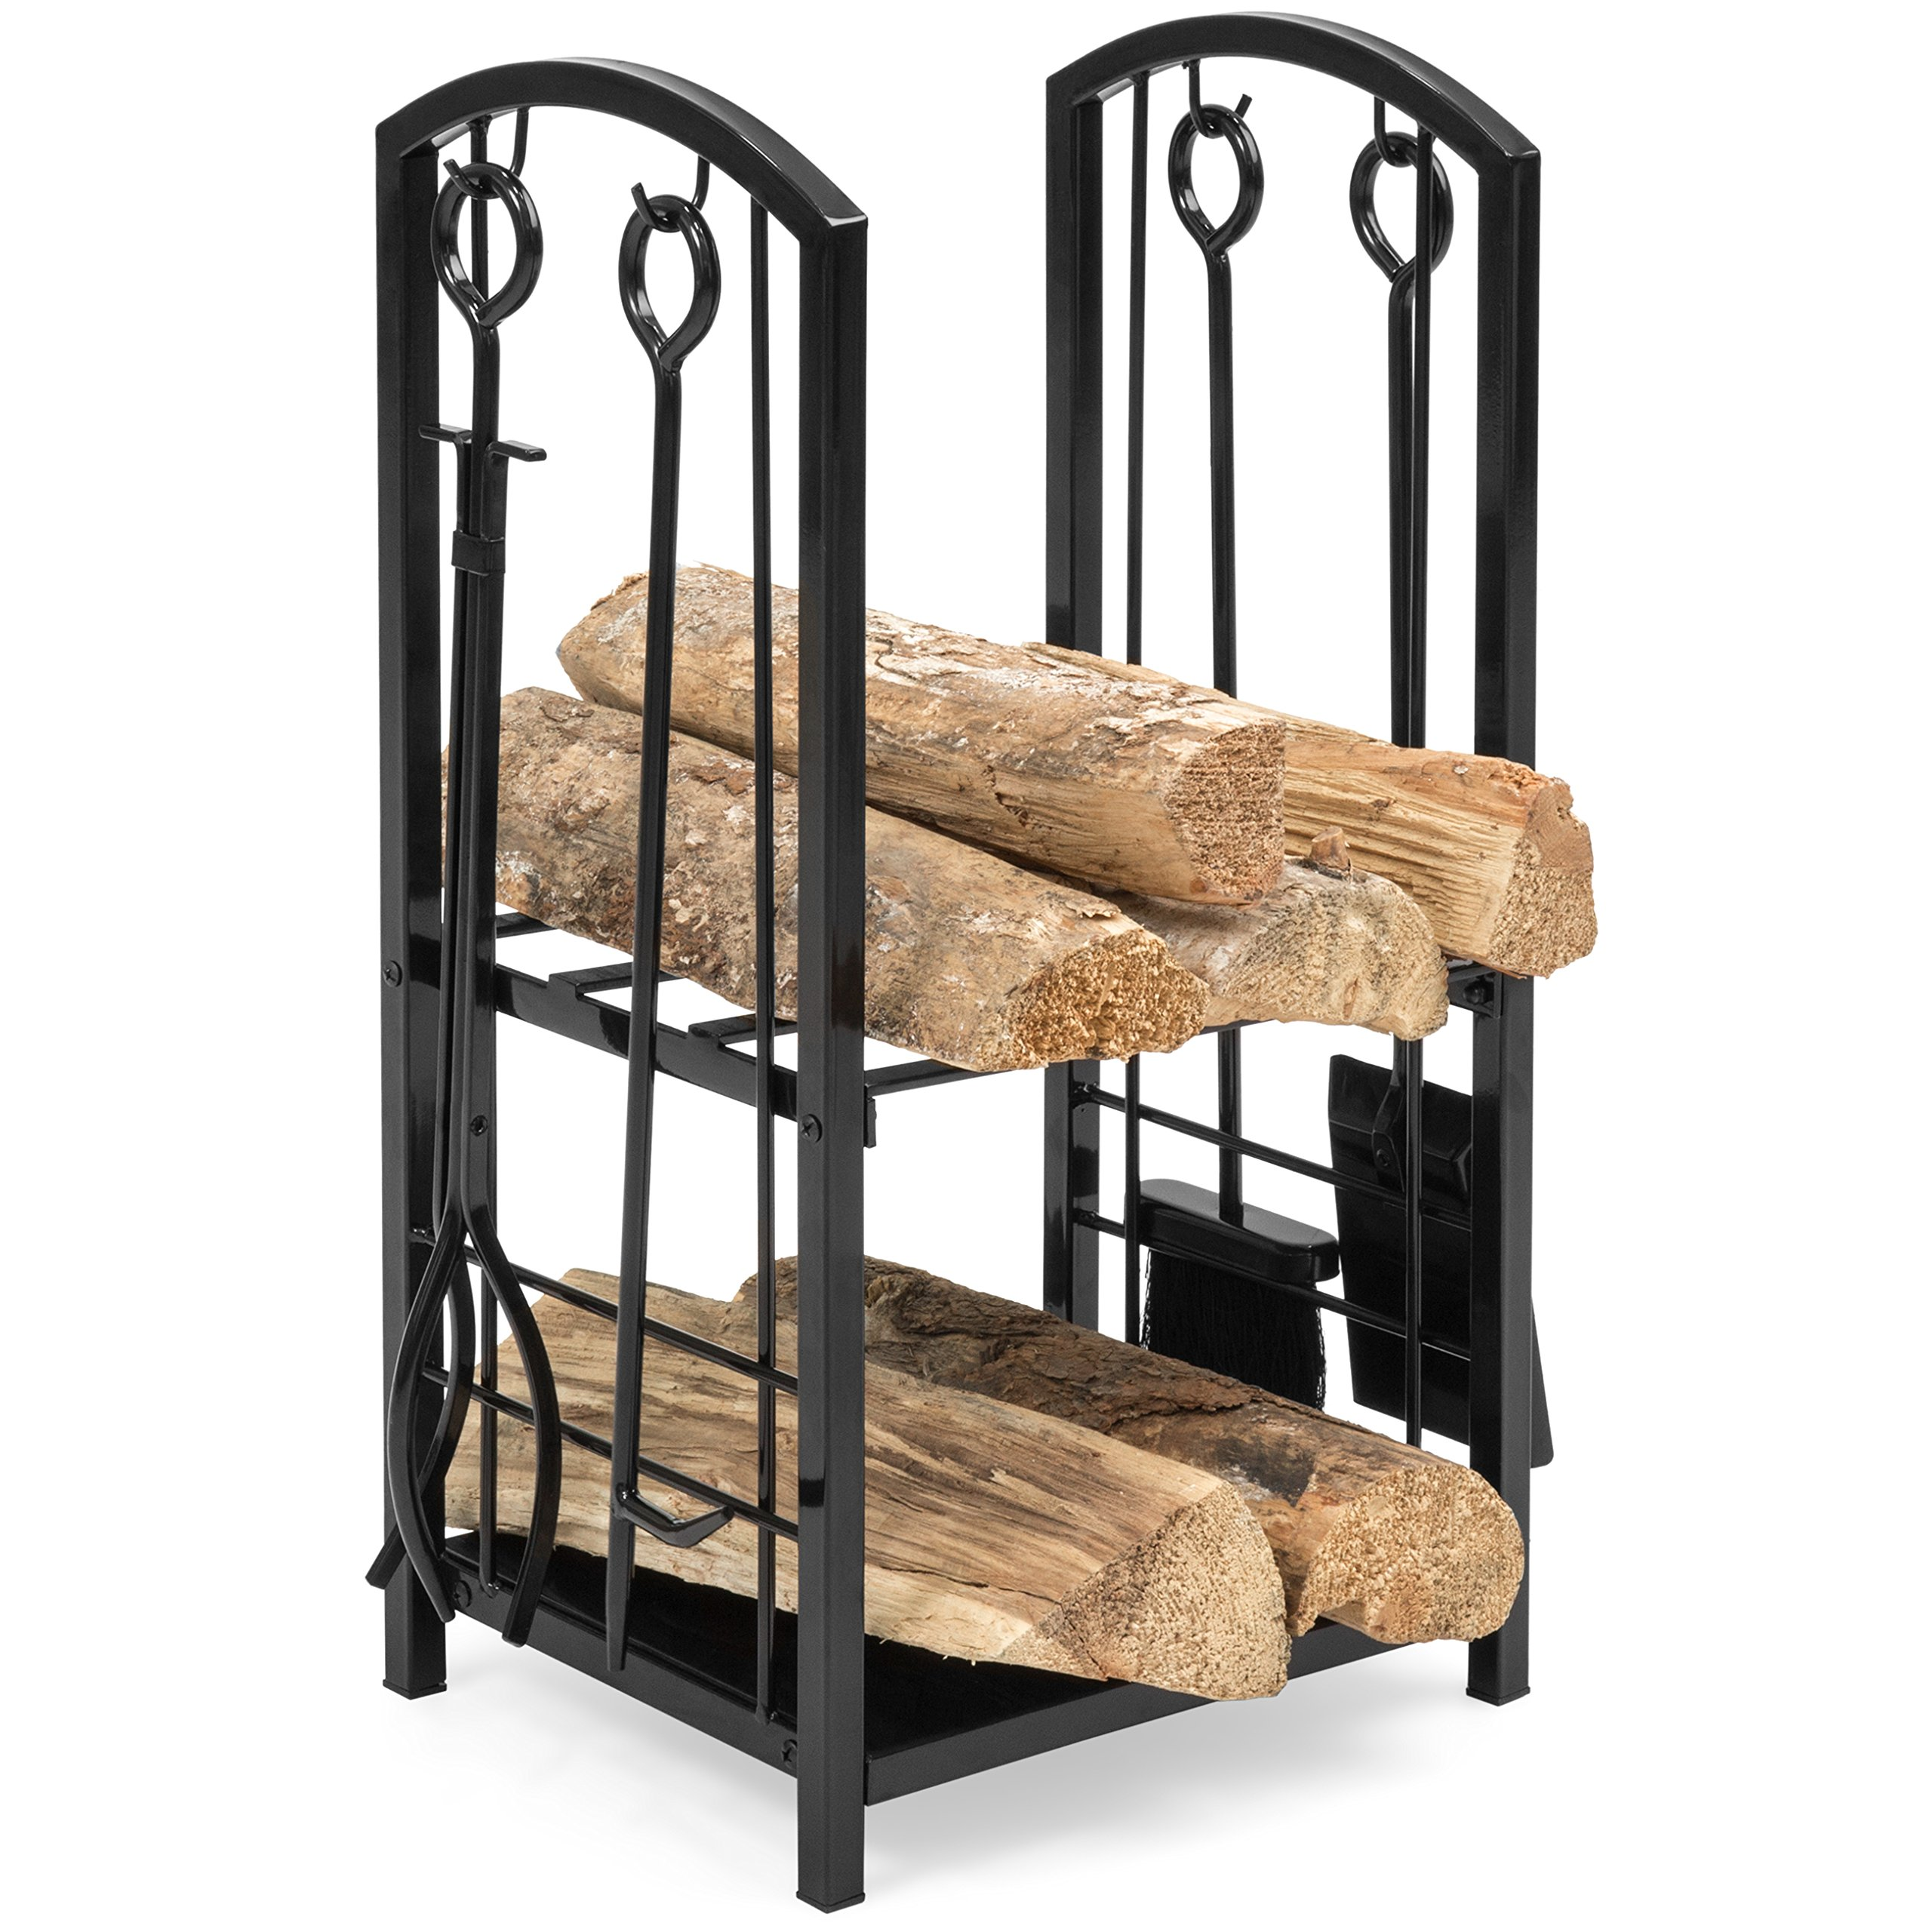 Best Choice Products Indoor Outdoor Fireplace Stackable Wrought Iron Firewood Log Rack Holder Storage Set w/Hook, Broom, Shovel, Tong - Black